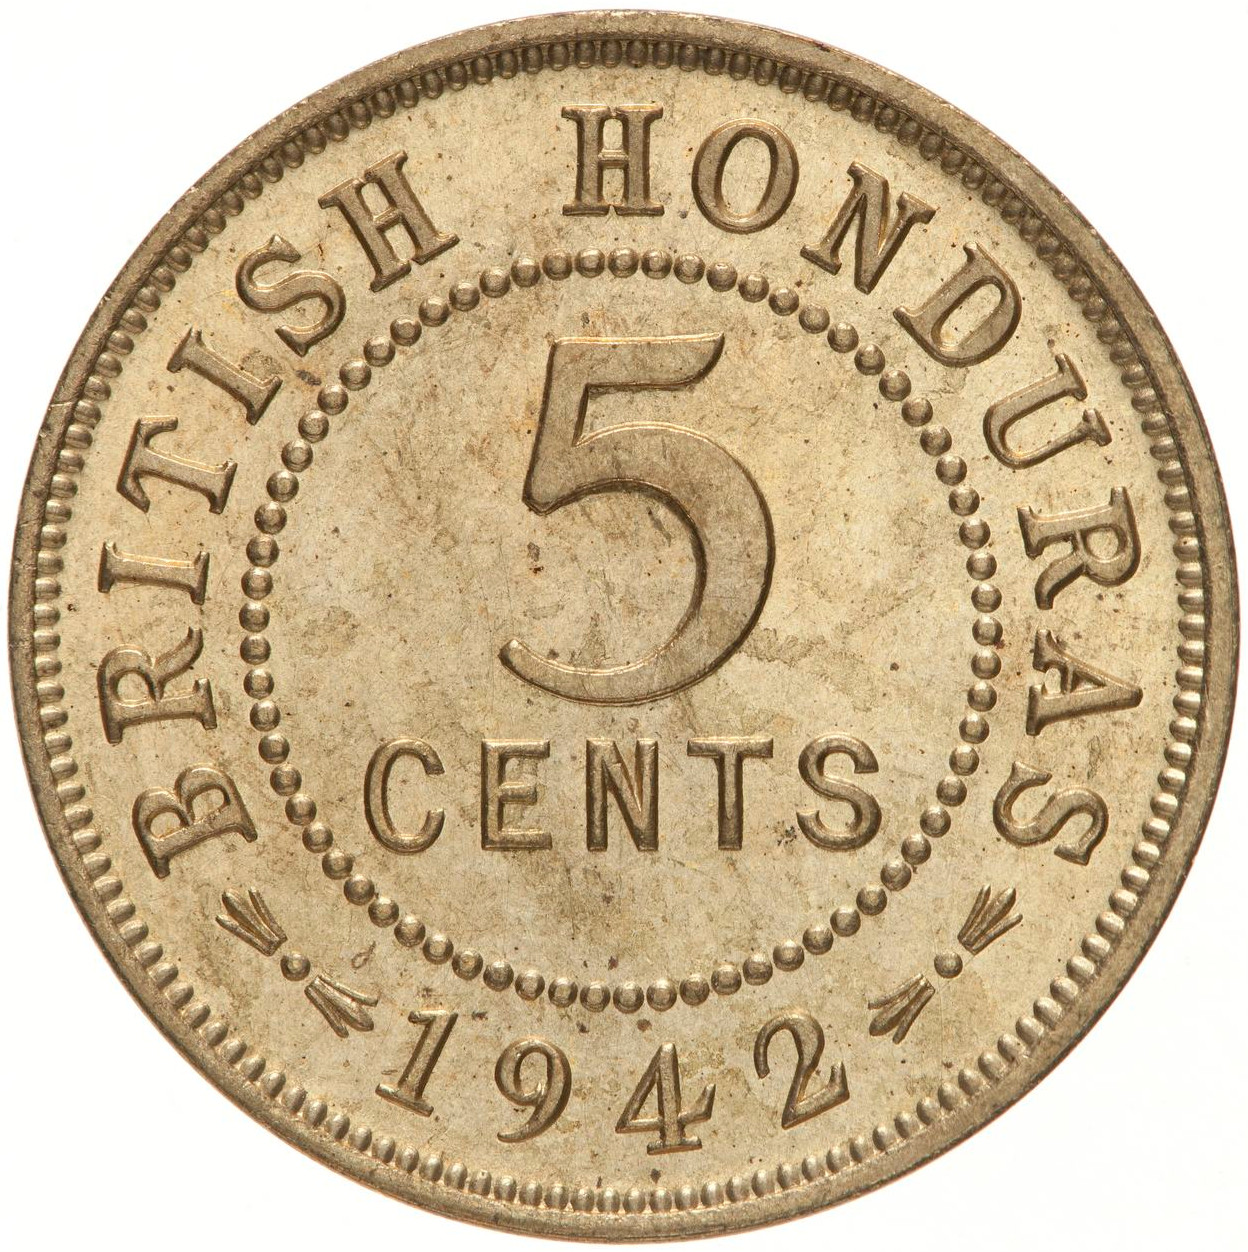 Five Cents 1942: Photo Coin - 5 Cents, British Honduras (Belize), 1942